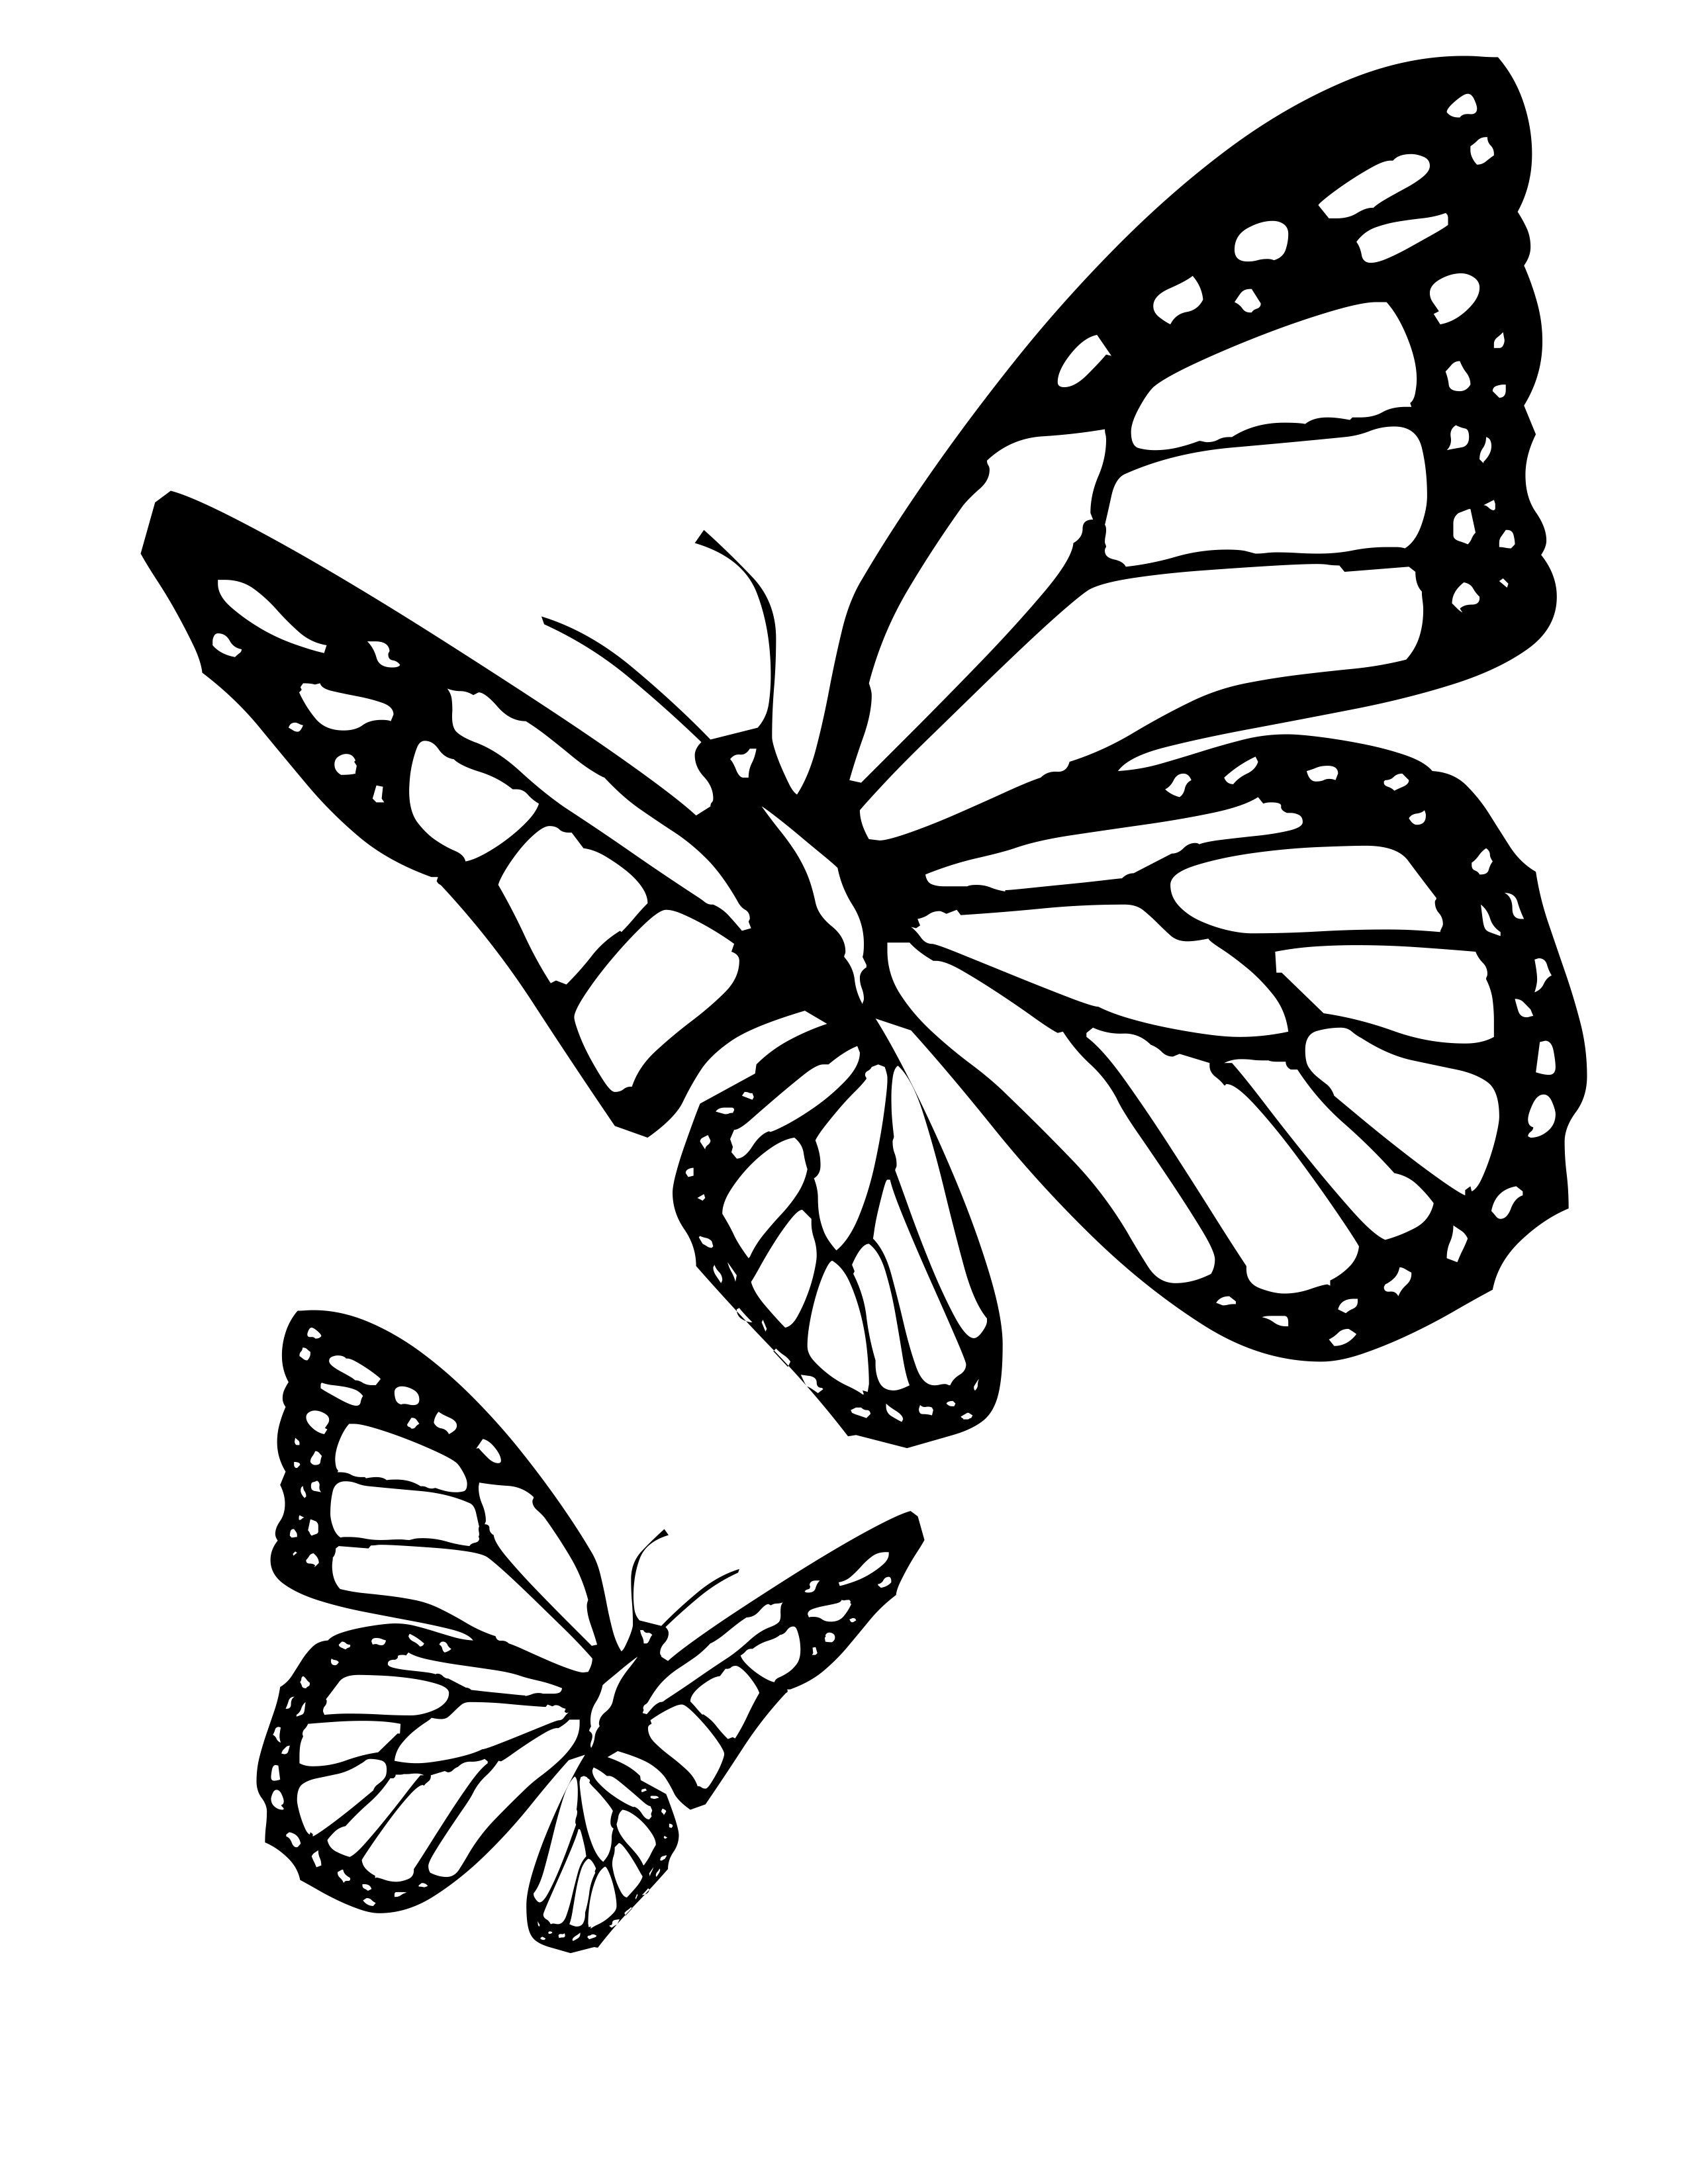 butterfly printable butterfly stencil butterfly stencil butterfly drawing printable butterfly